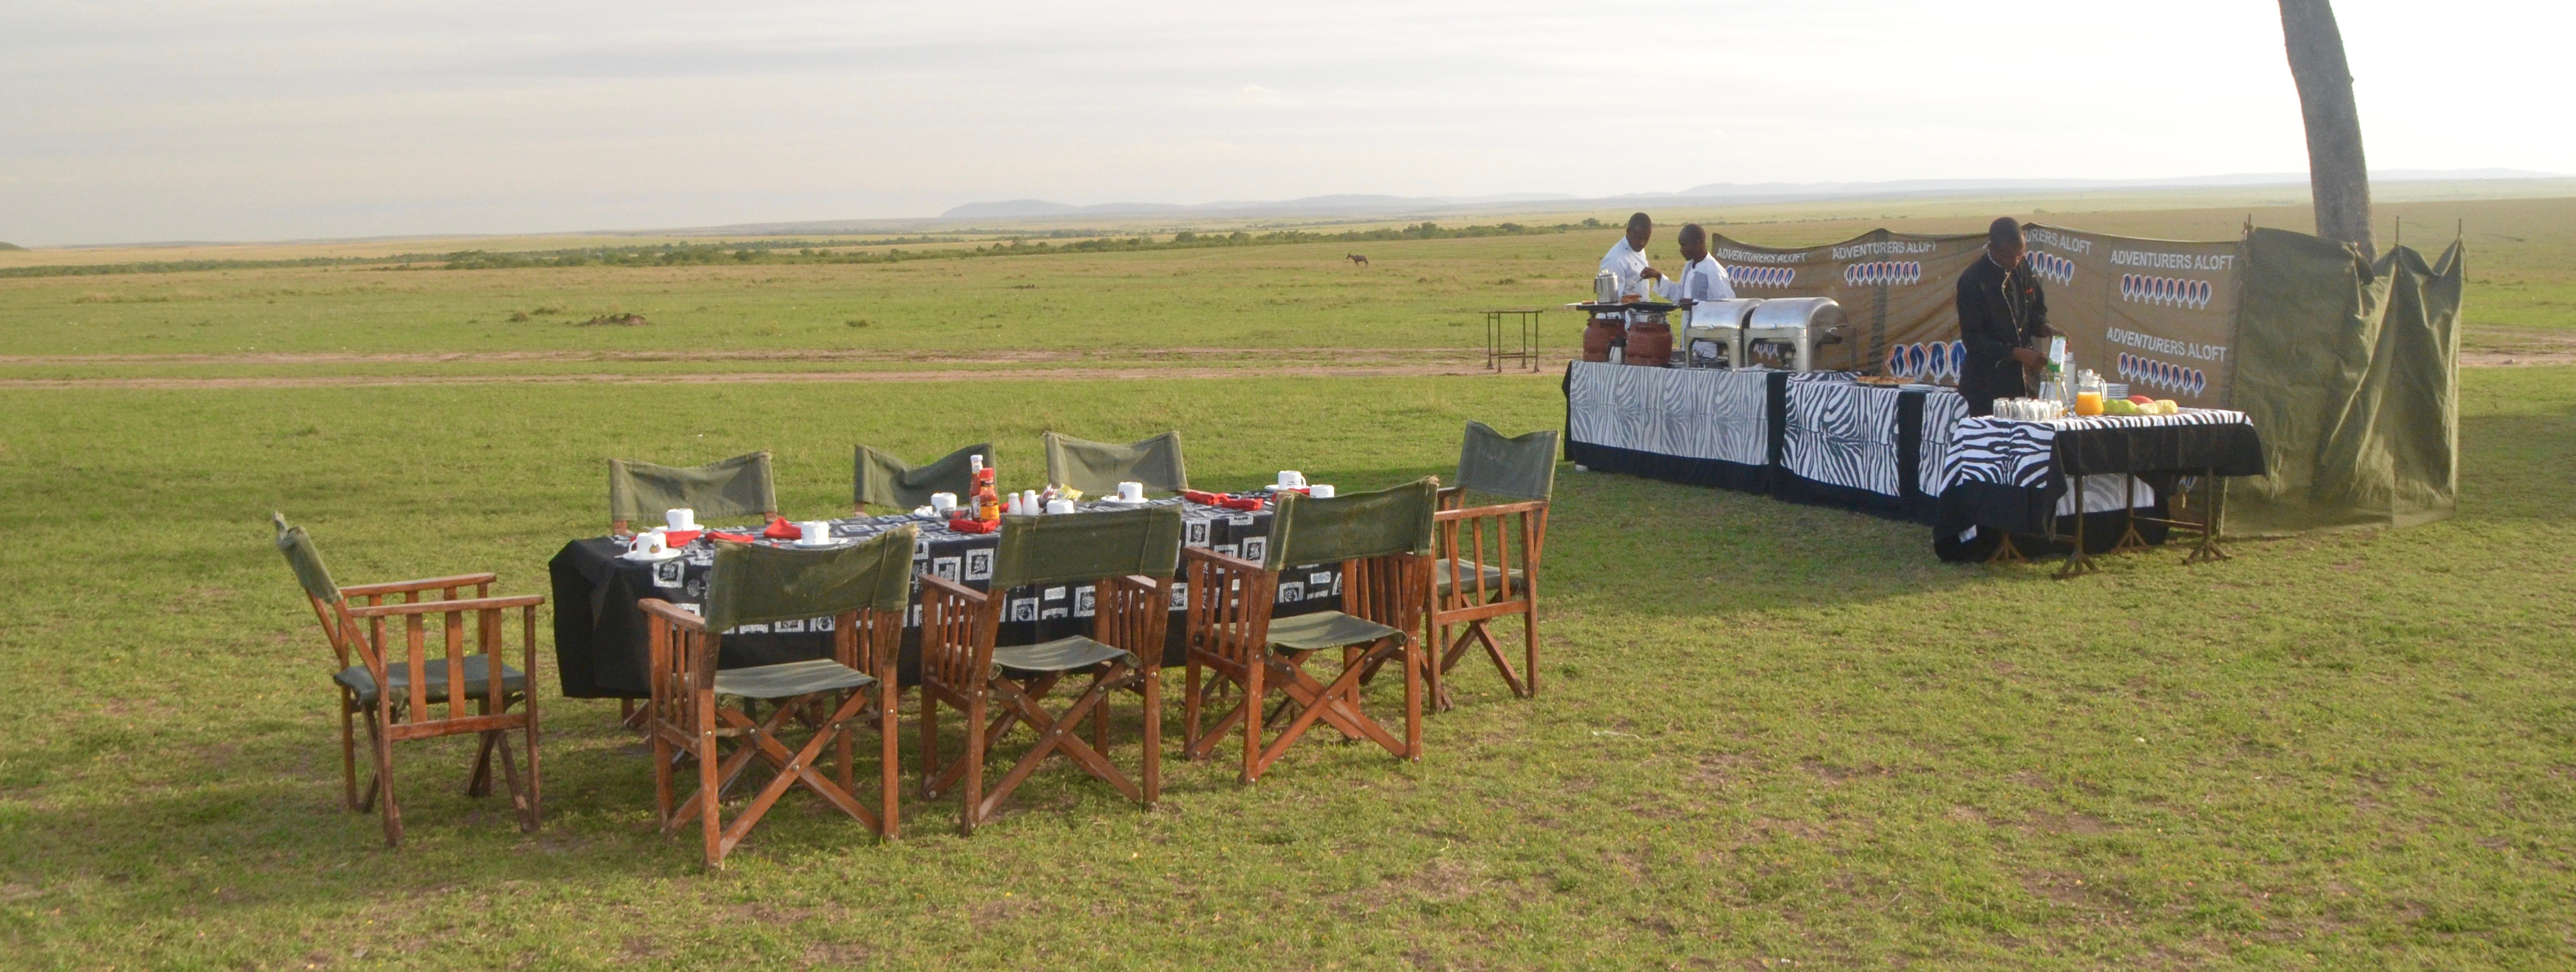 Breakfast on the Savannah, Masai Mara